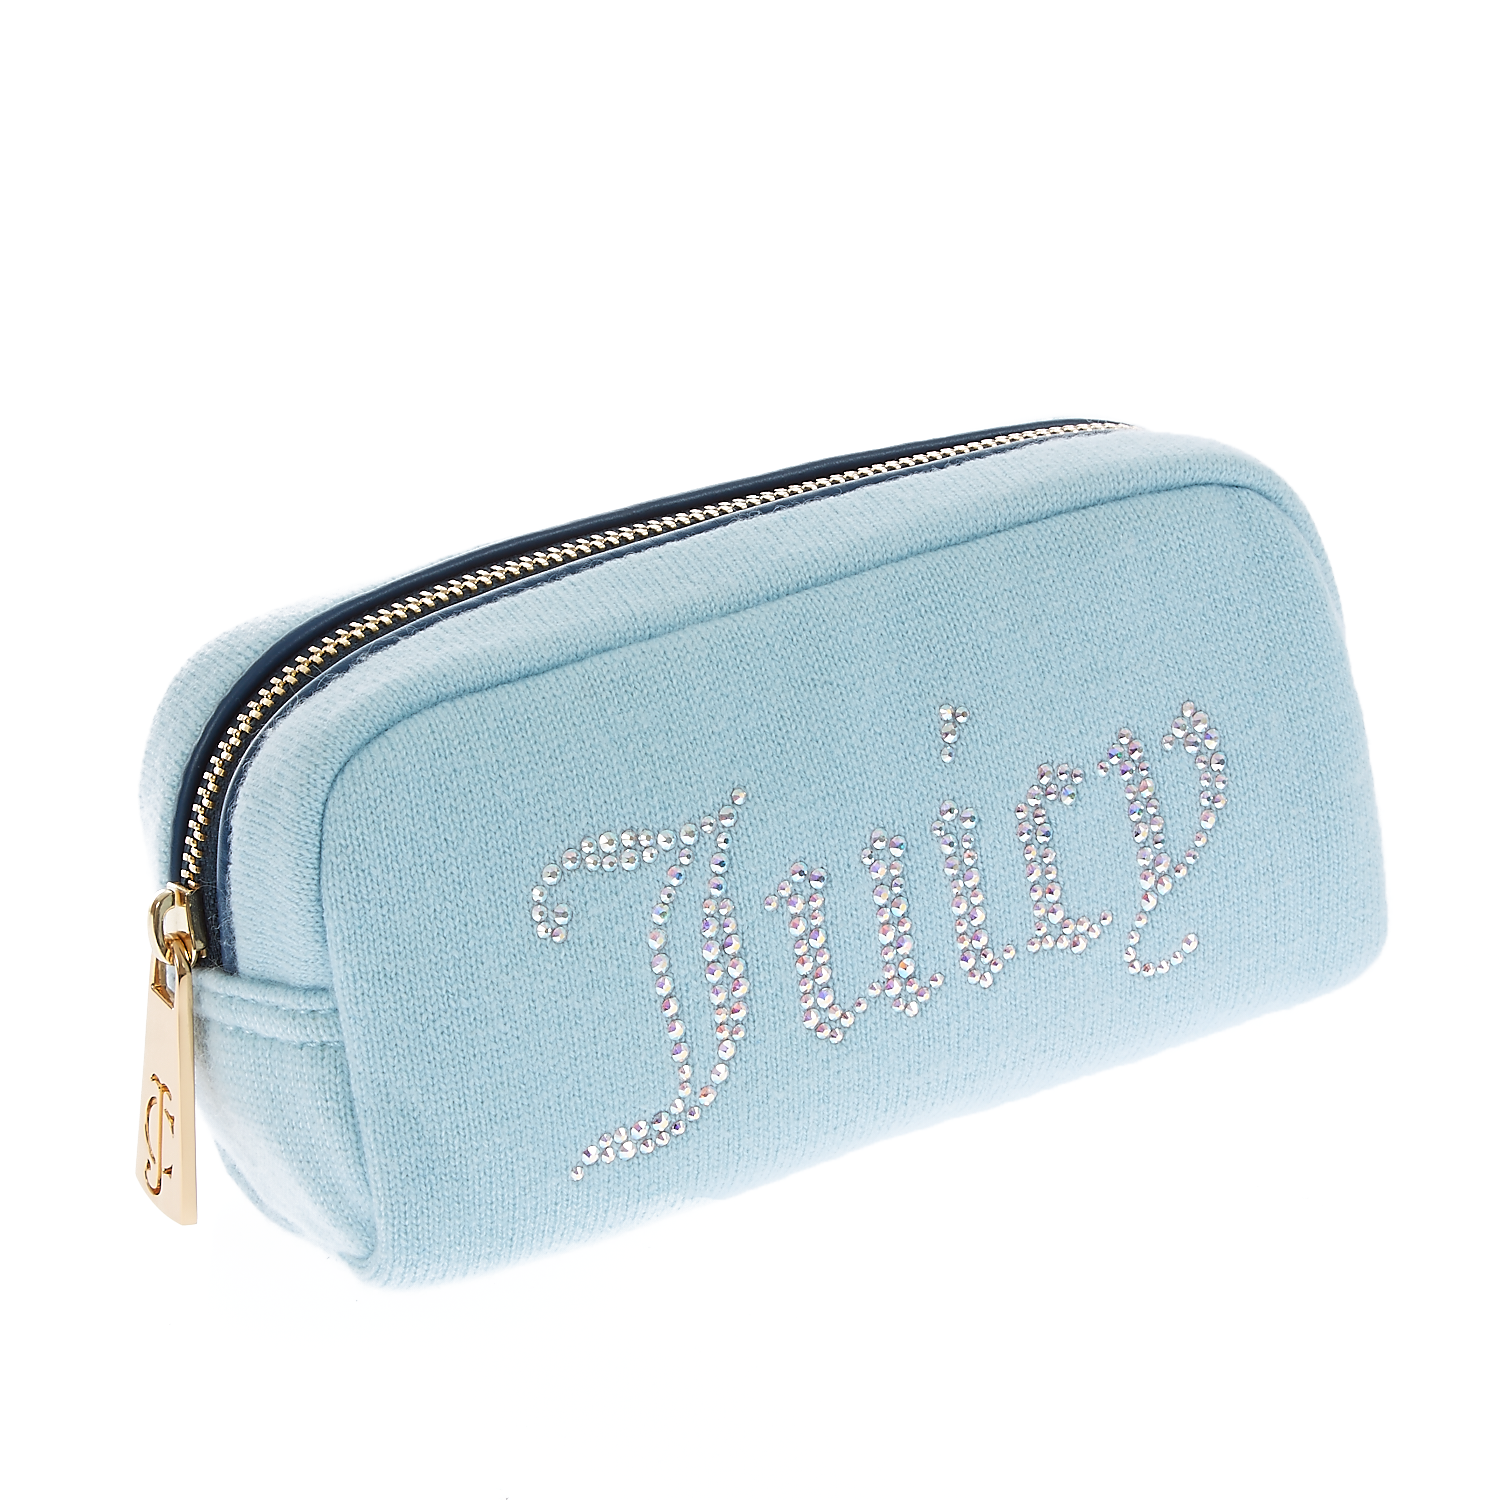 JUICY COUTURE – Γυναικείο νεσεσέρ Juicy Couture σιέλ 1434650.0-0027